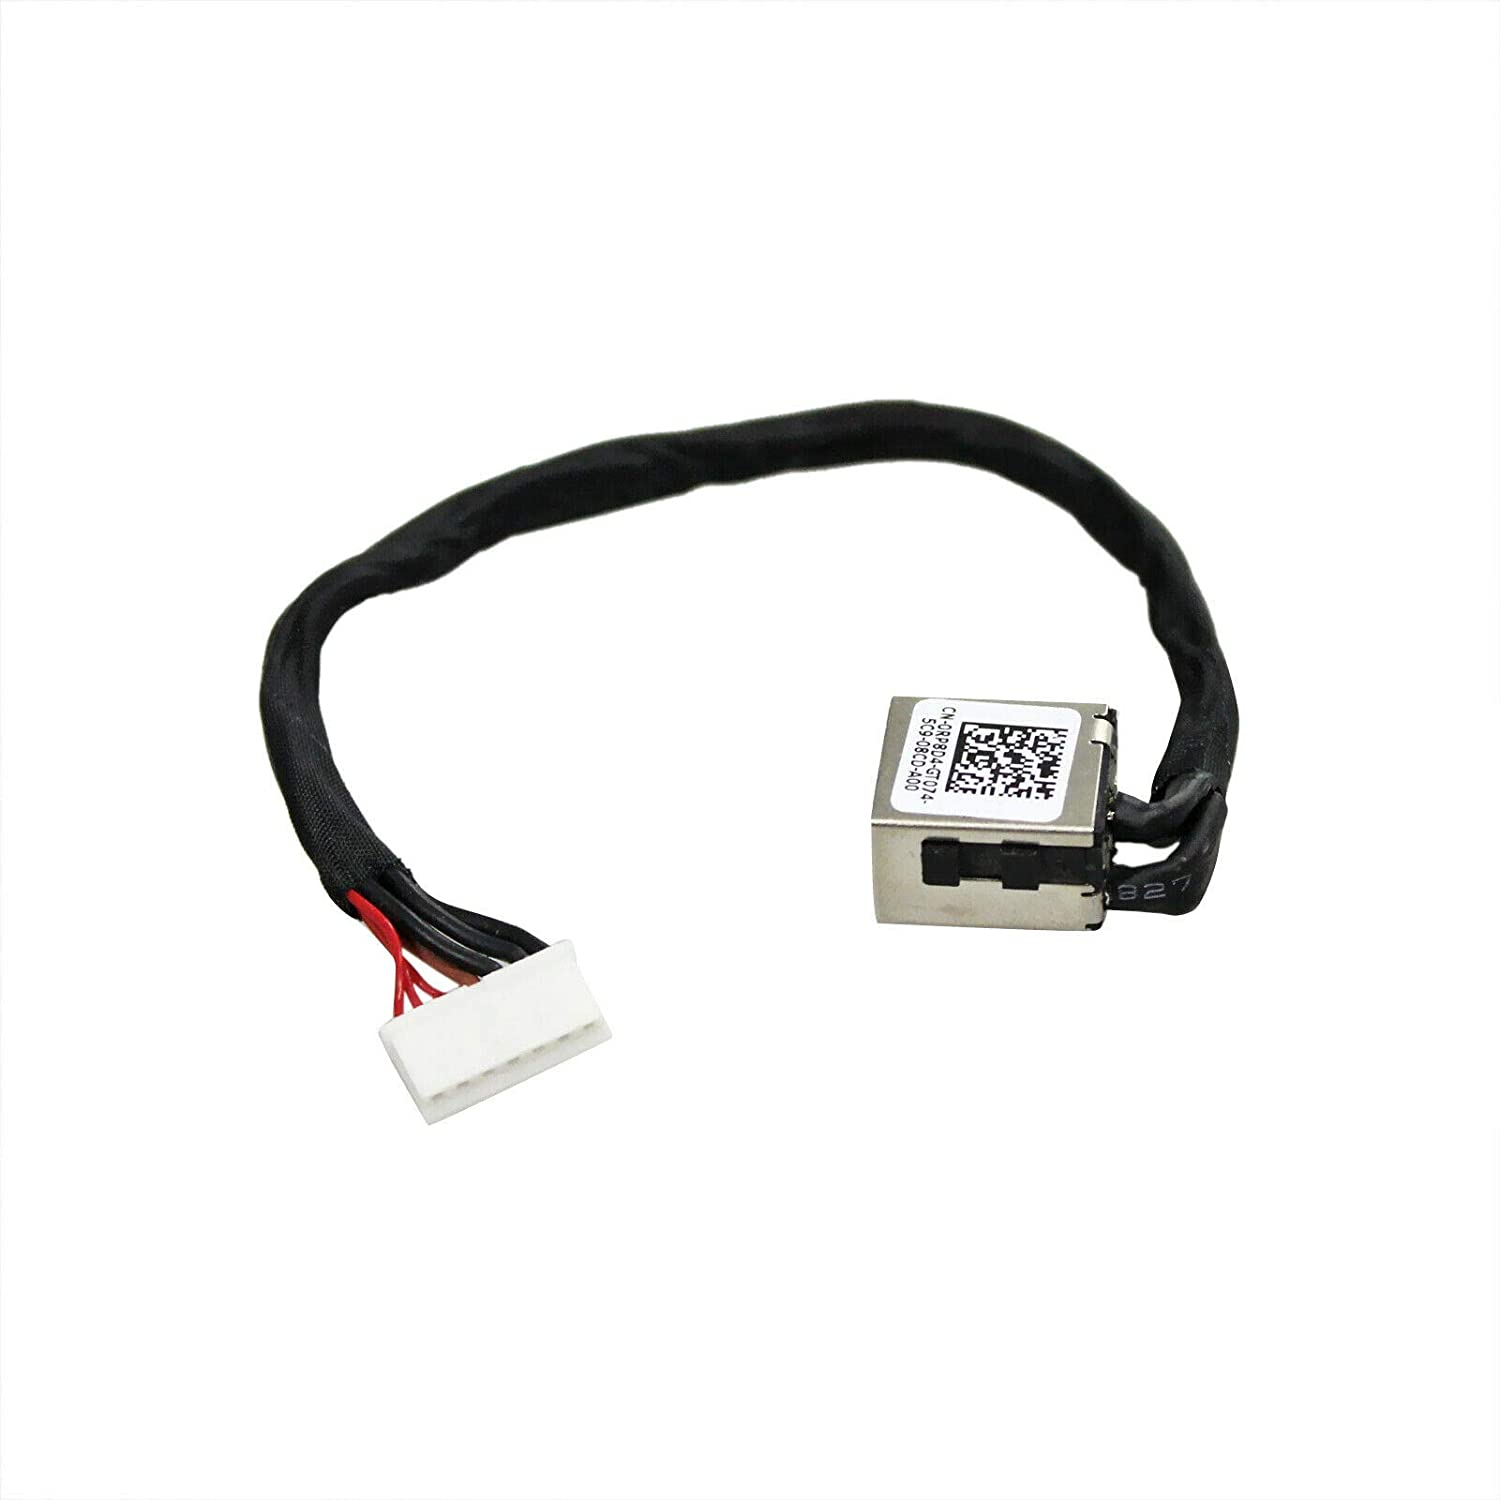 Huasheng Suda DC Power Jack Cable Replacement for DELL Inspiron 15 7566 15 7567 15 7556 i7566 i7567 P65F P65F001 P65F002 D18KH 0D18KH OD18KH